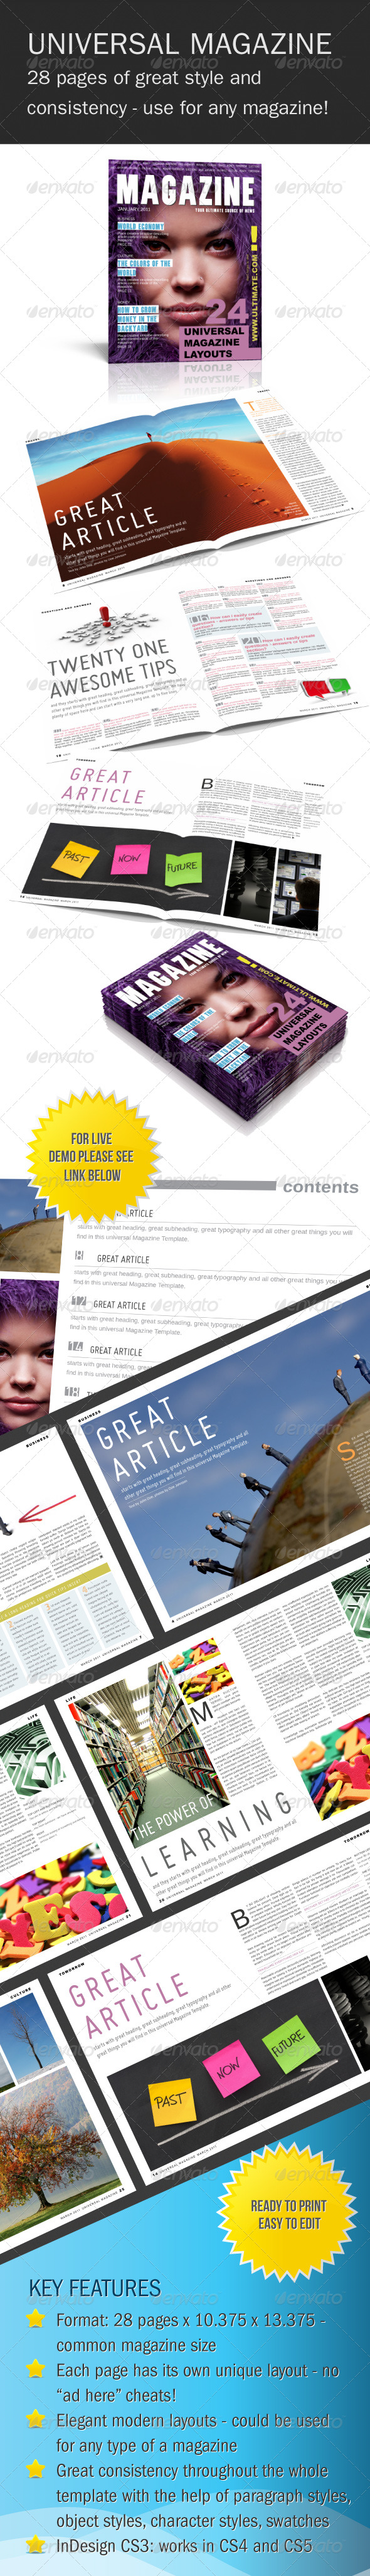 Universal InDesign Magazine Template - Magazines Print Templates